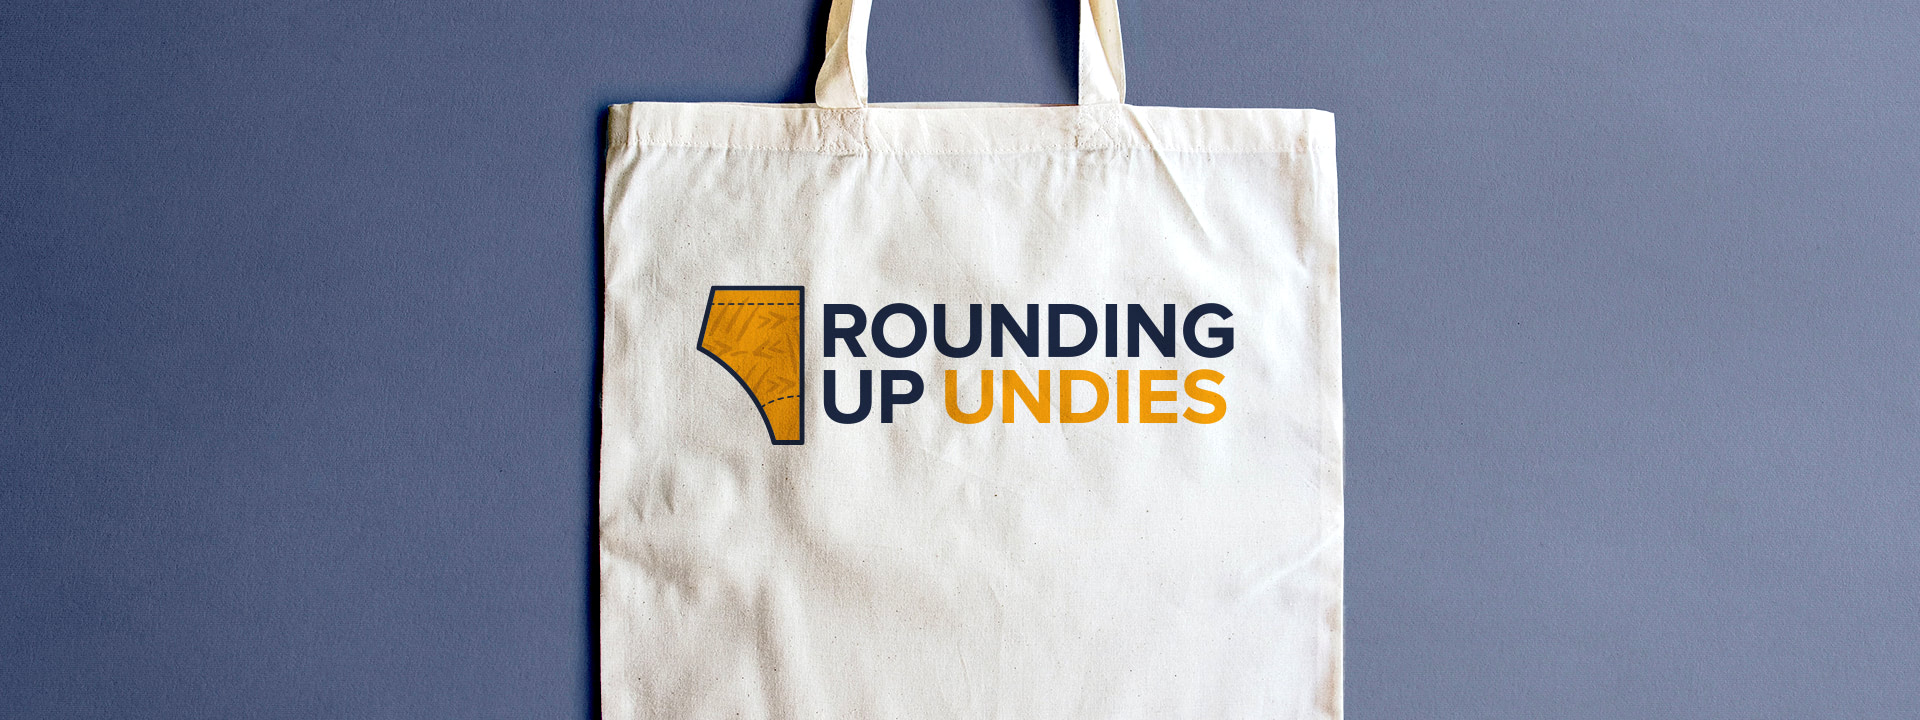 Rounding Up Undies logo design